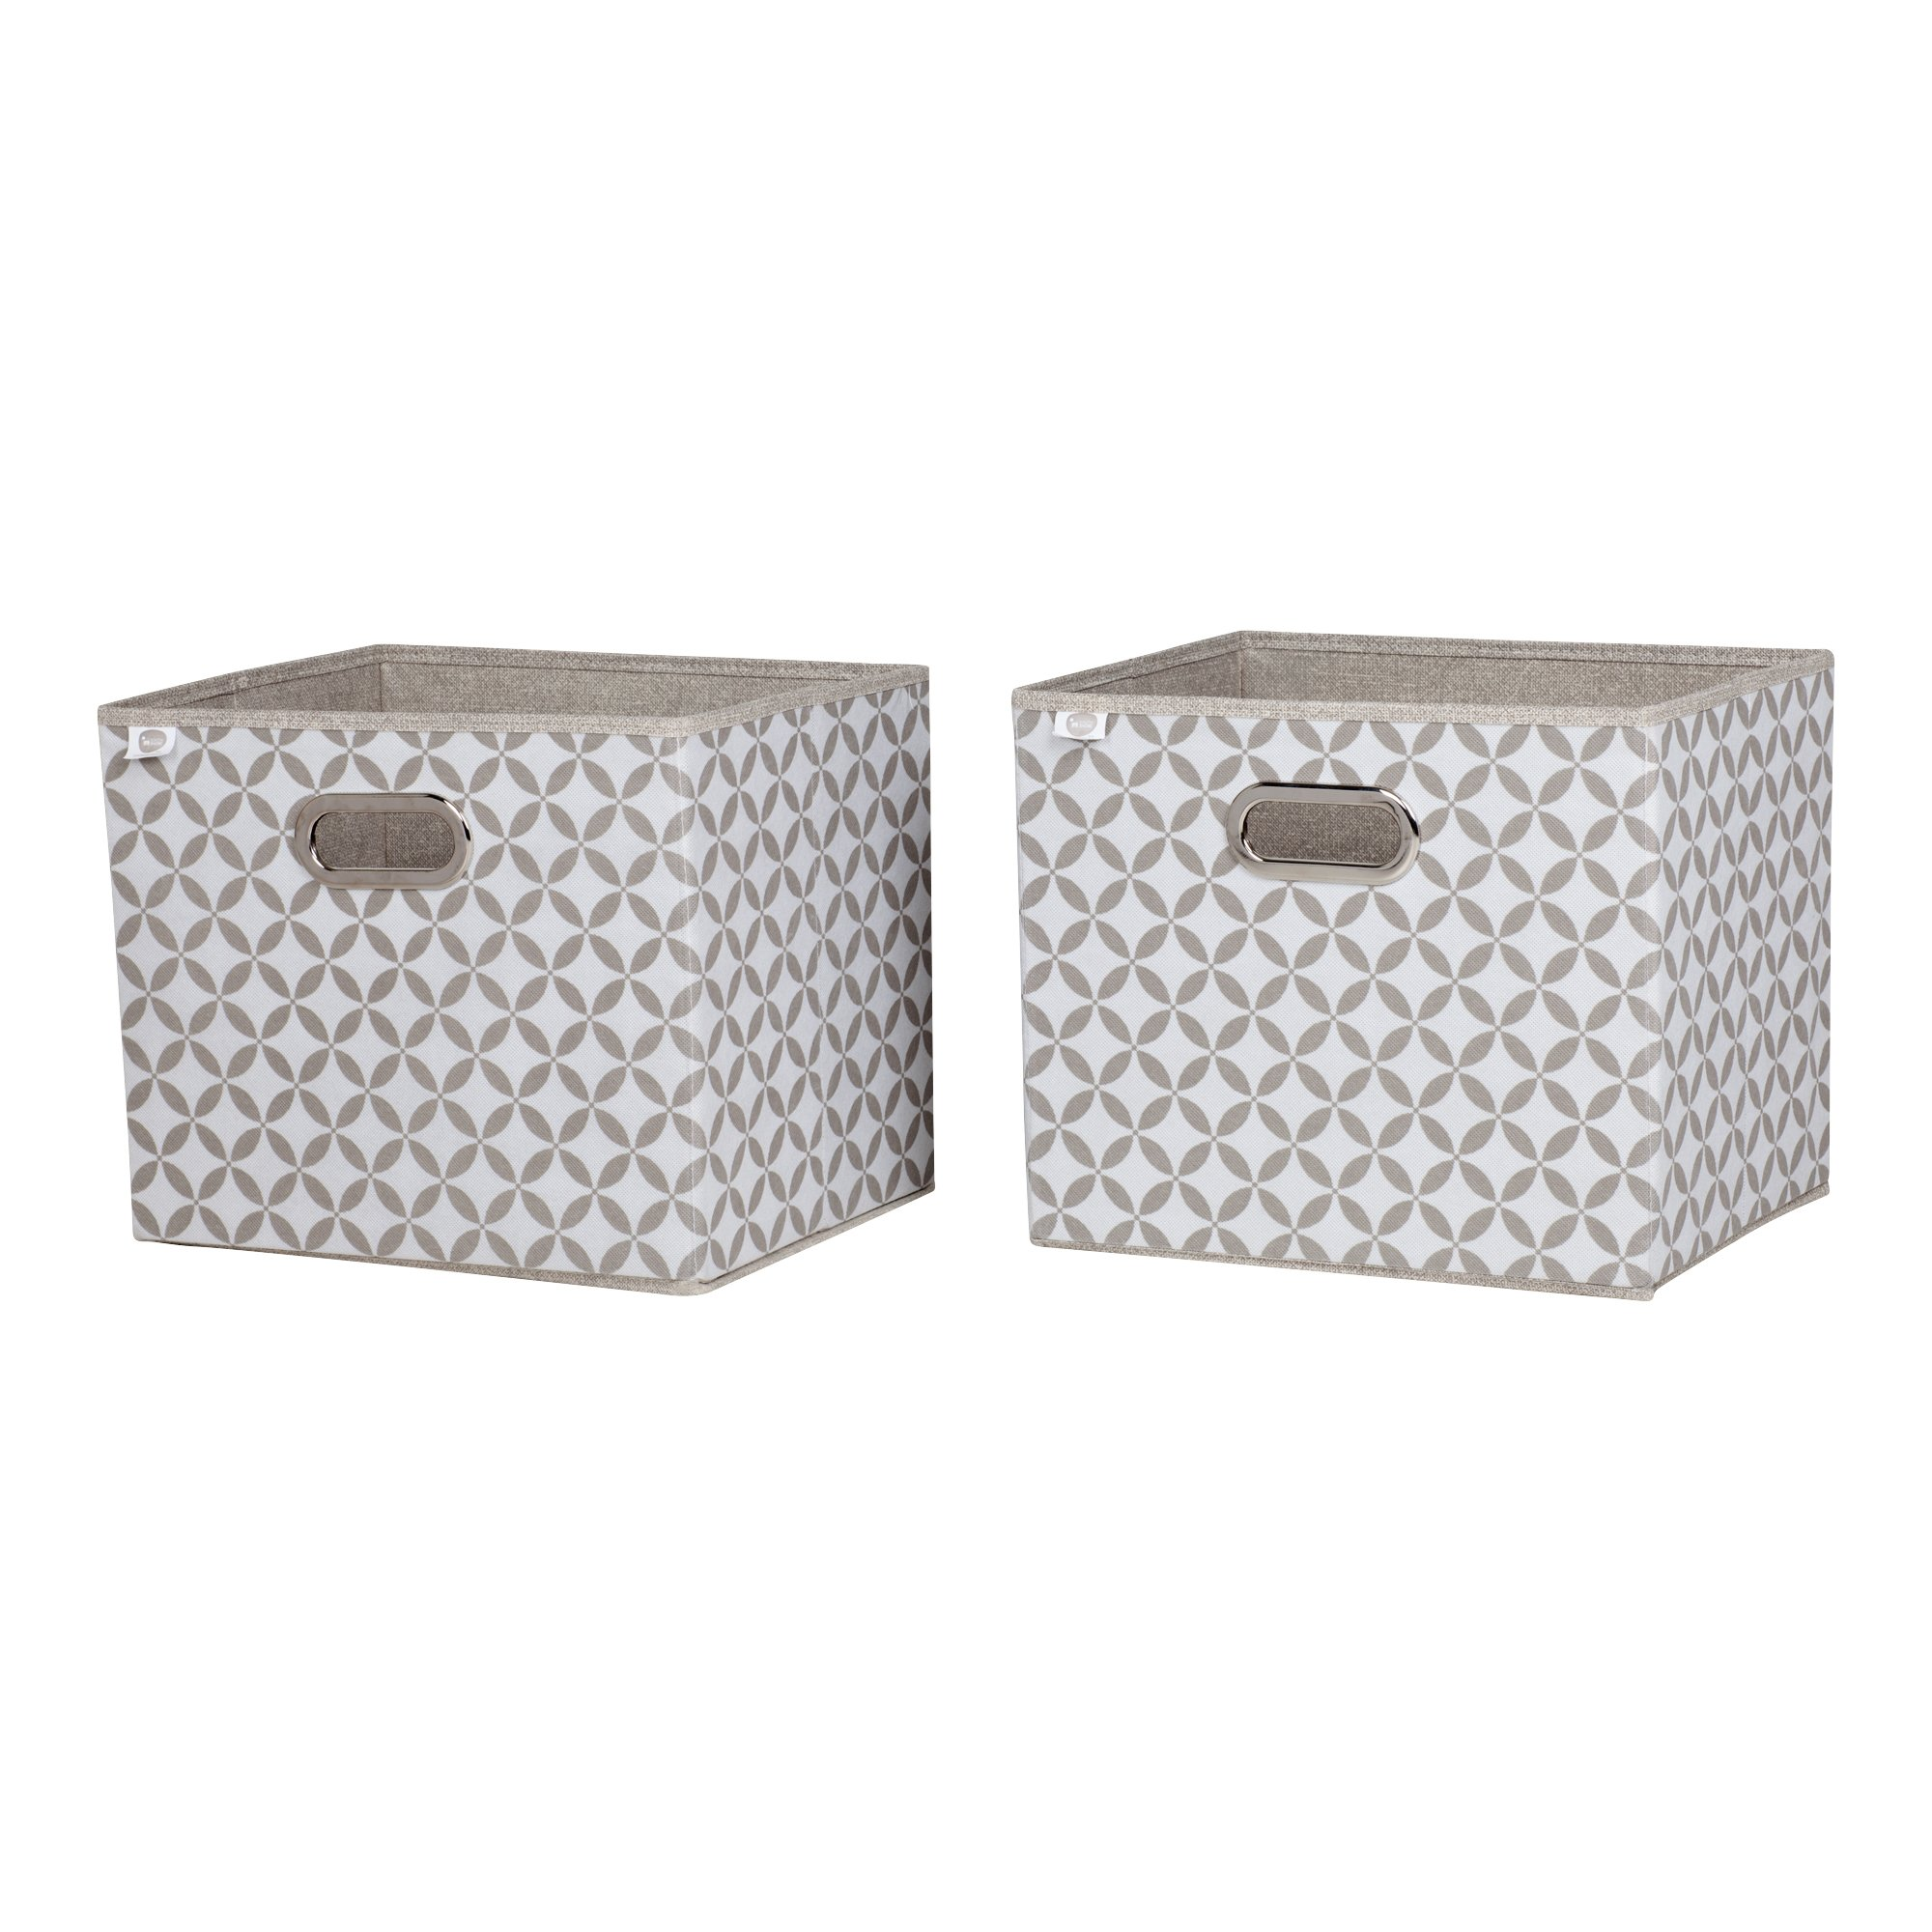 South Shore Storit Fabric Storage Baskets with Pattern (2 Pack), Taupe and White by South Shore